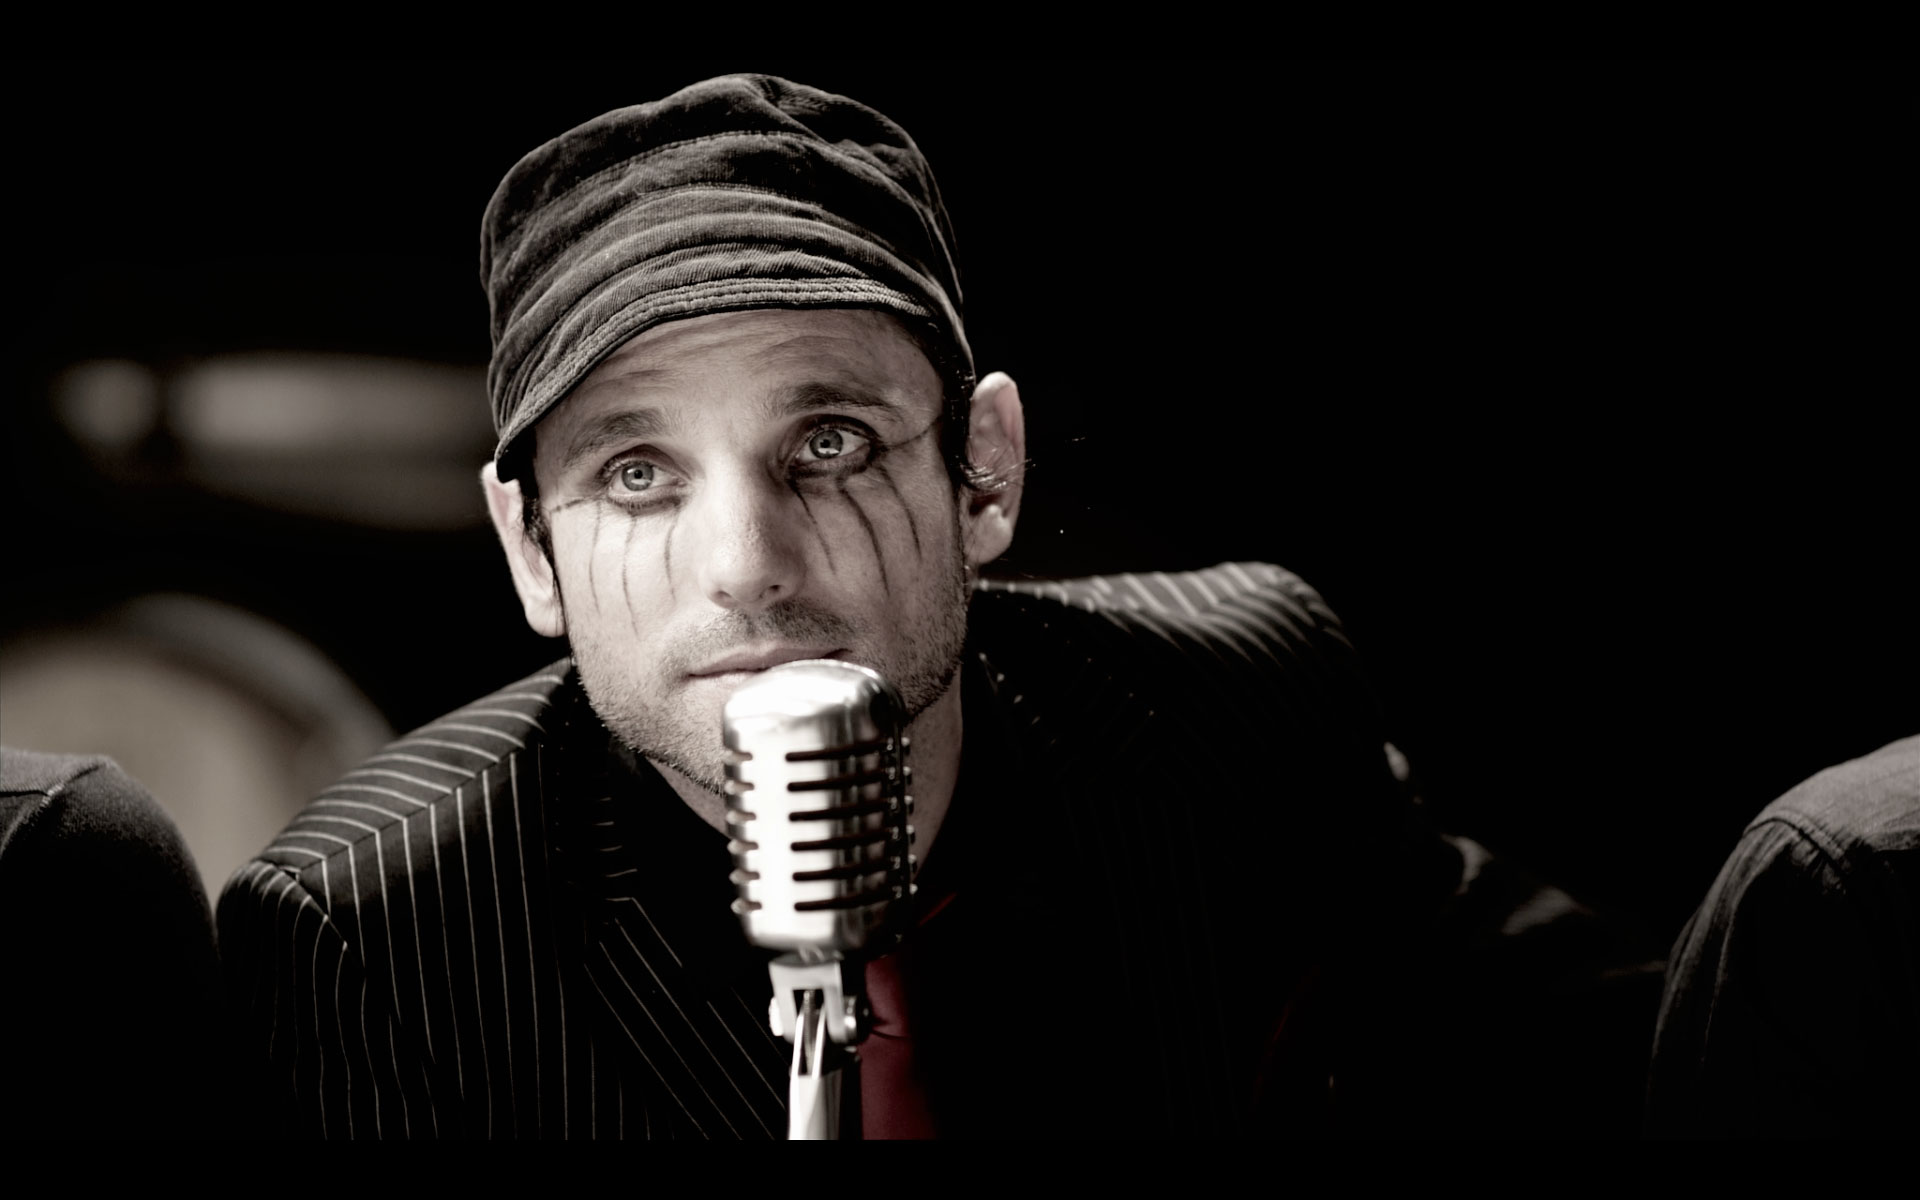 The Parlotones - Push me to the Floor